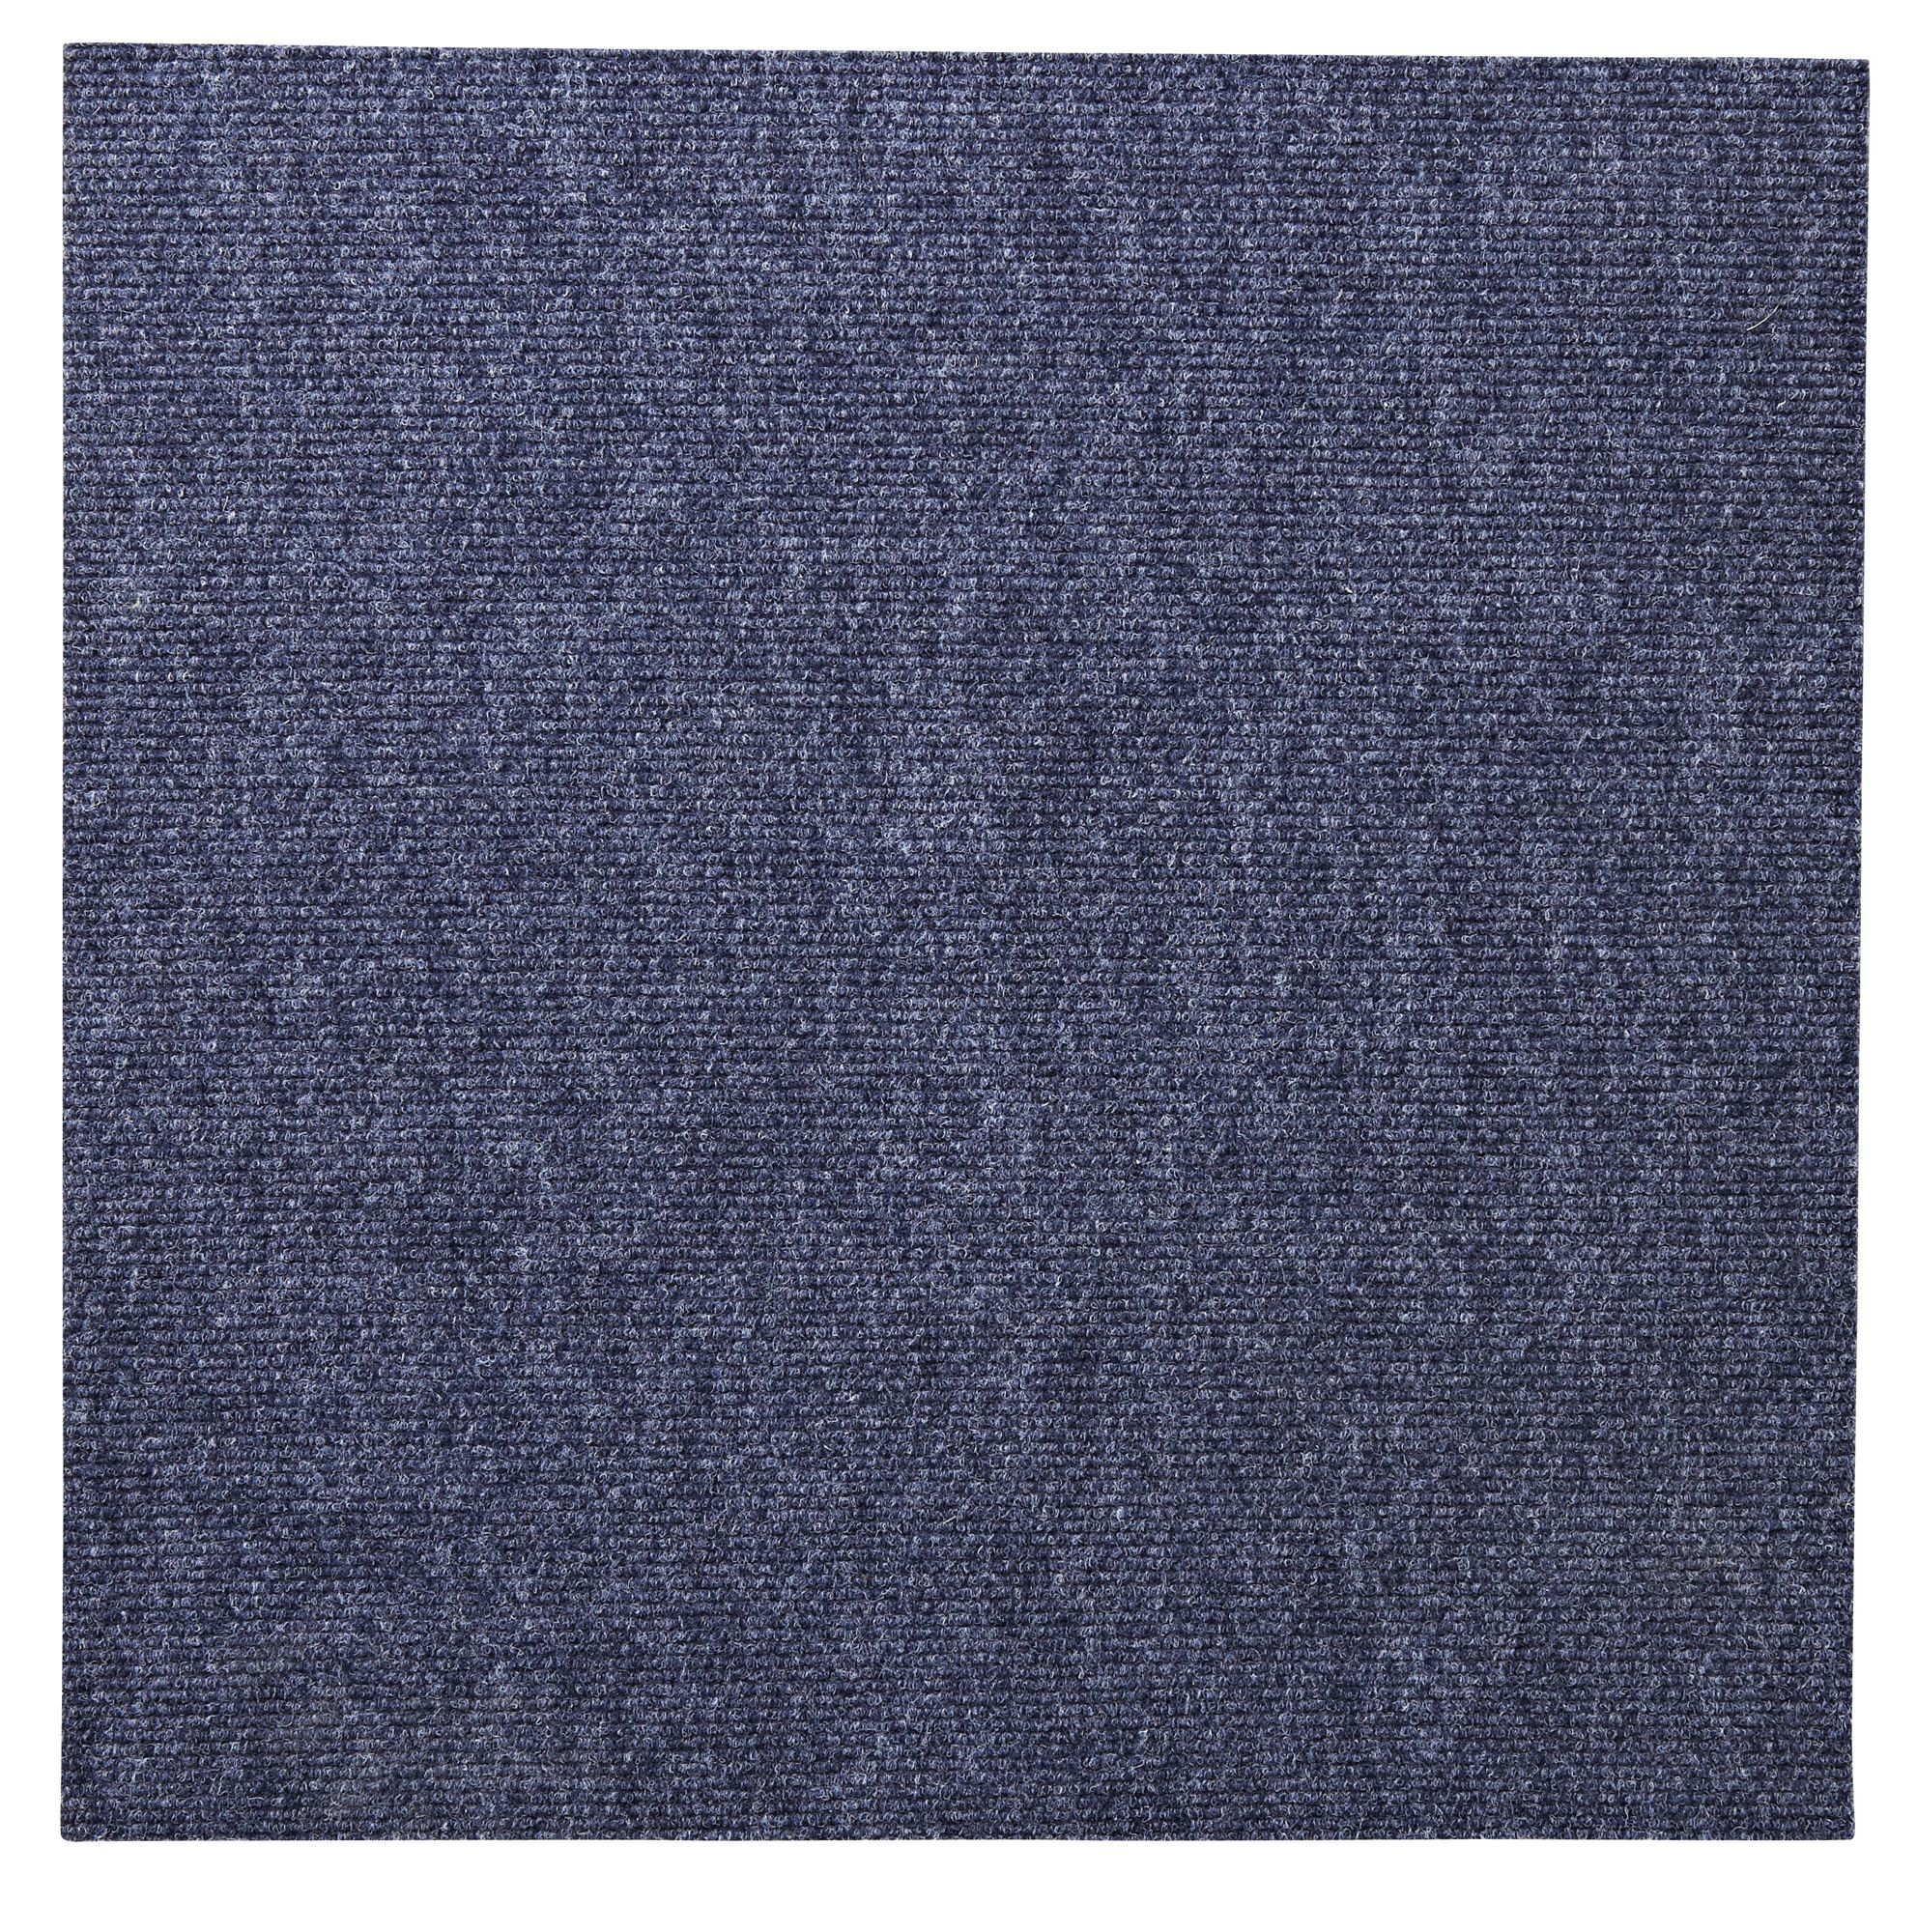 B Amp Q Blue Loop Carpet Tile L 50cm Pack Of 10